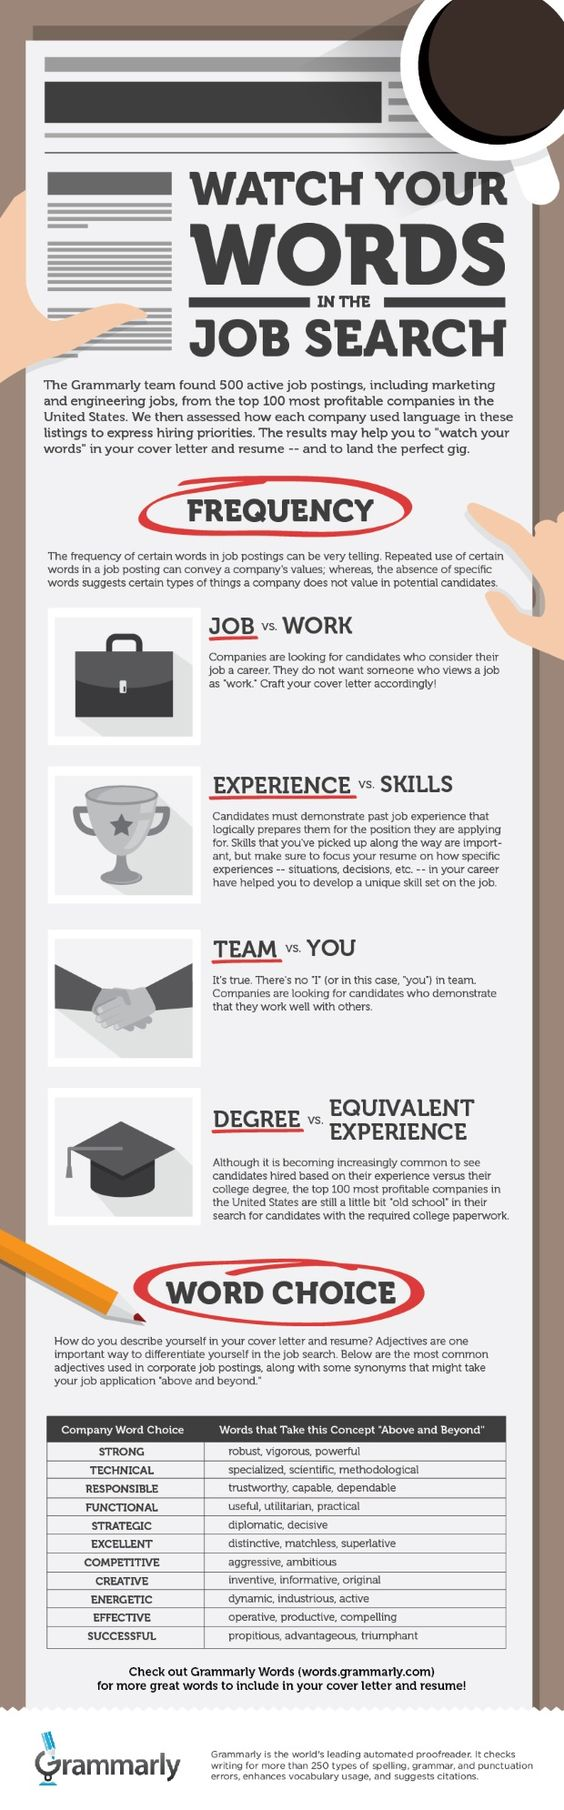 Cover letter resume Cover letters and Resume on Pinterest